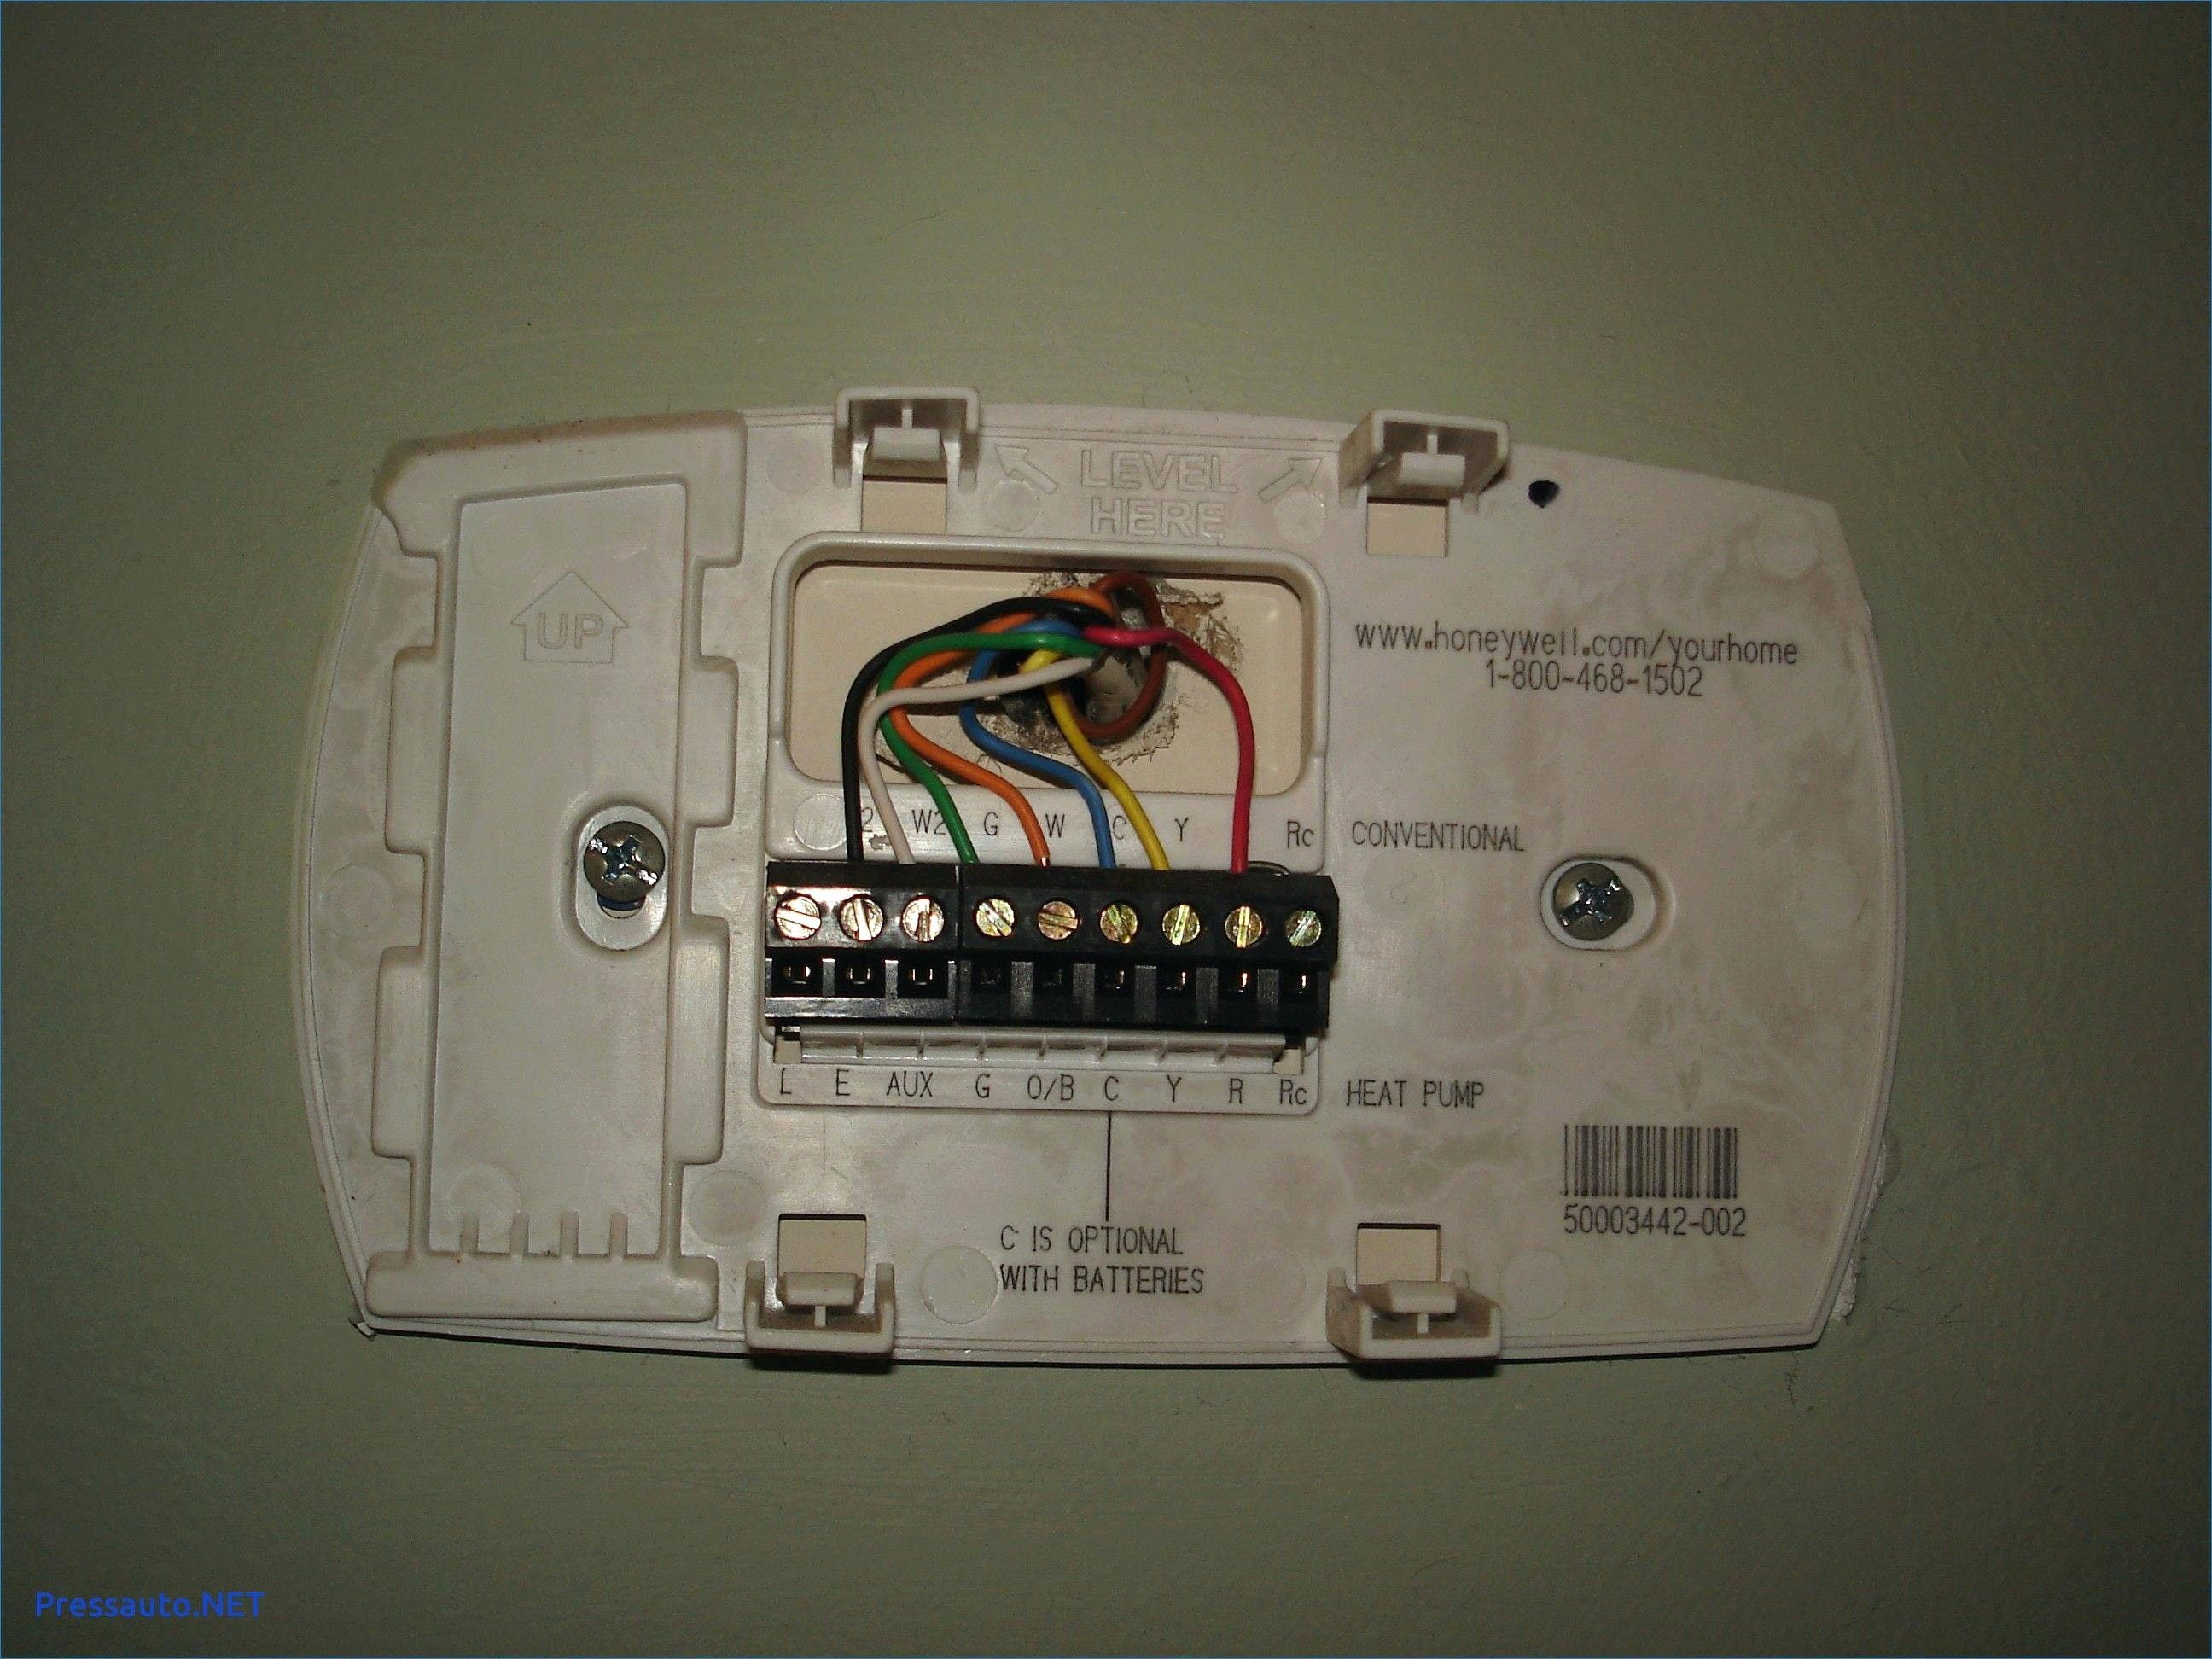 medium resolution of honeywell rth2300 thermostat wiring diagram wiring diagram name honeywell thermostat rth221b wiring diagram honeywell rth221 wiring diagram